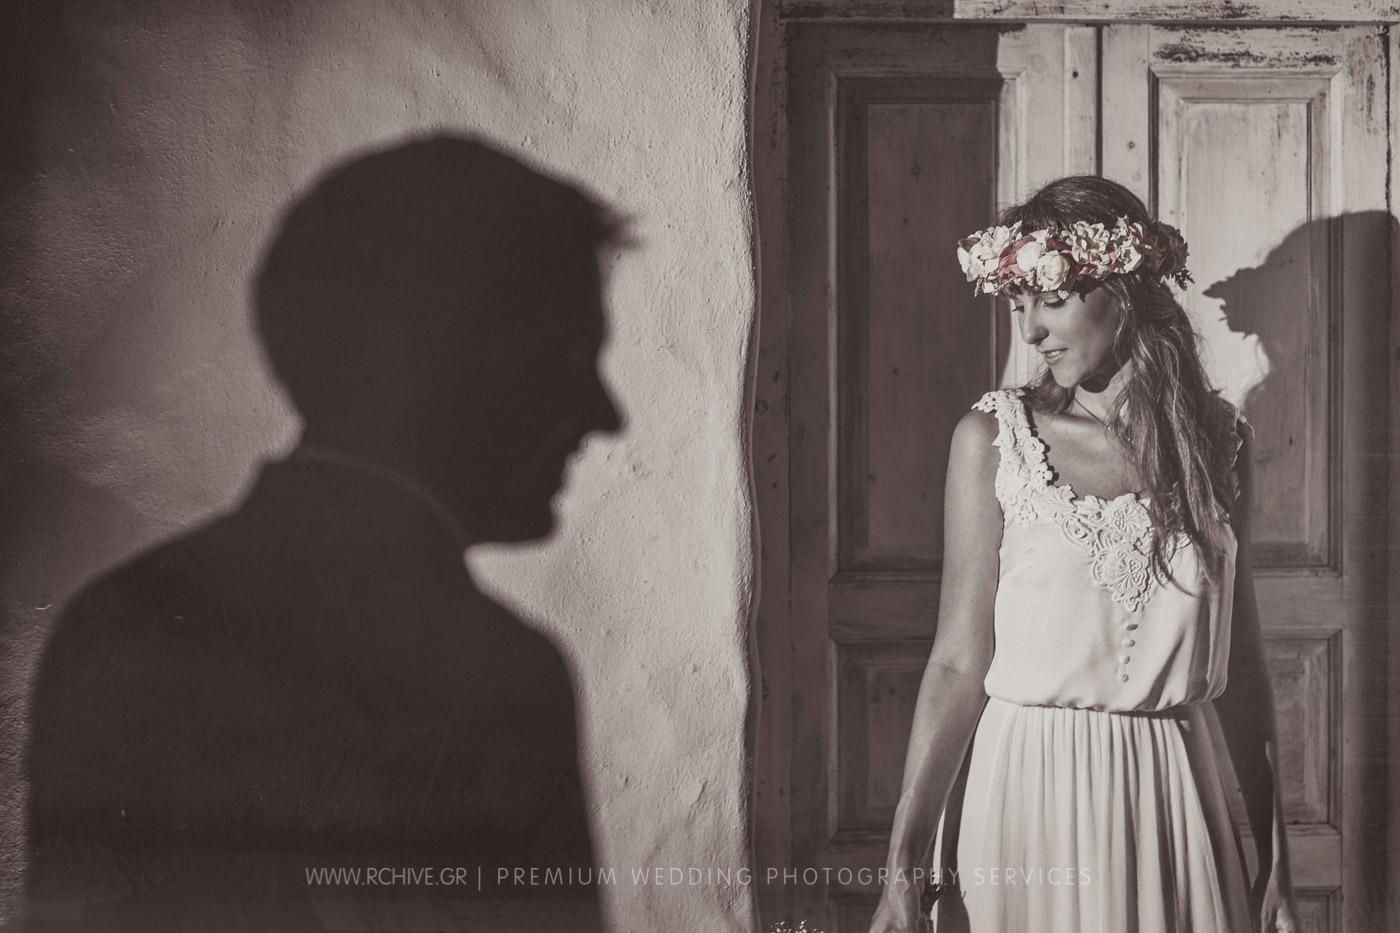 creative wedding photographer greece